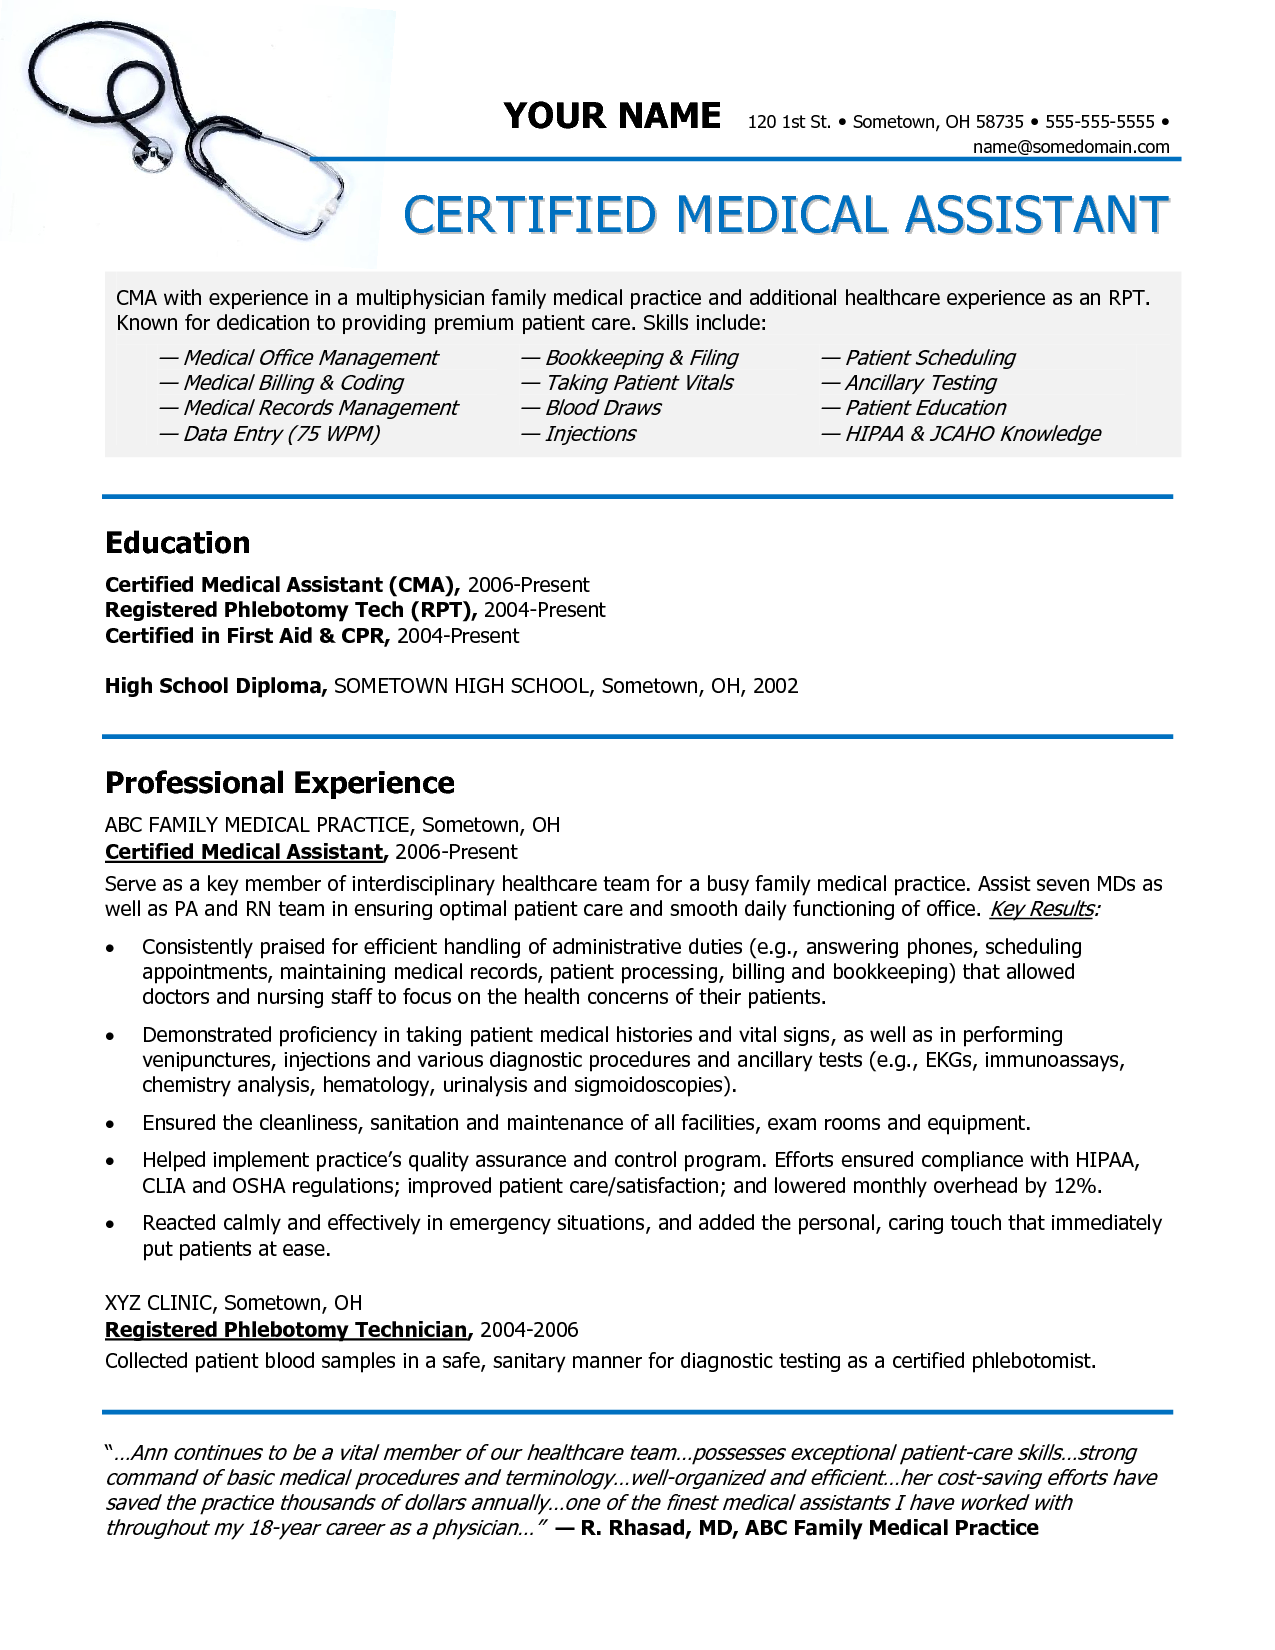 medical assistant resume entry level examples medical assistant sample resume